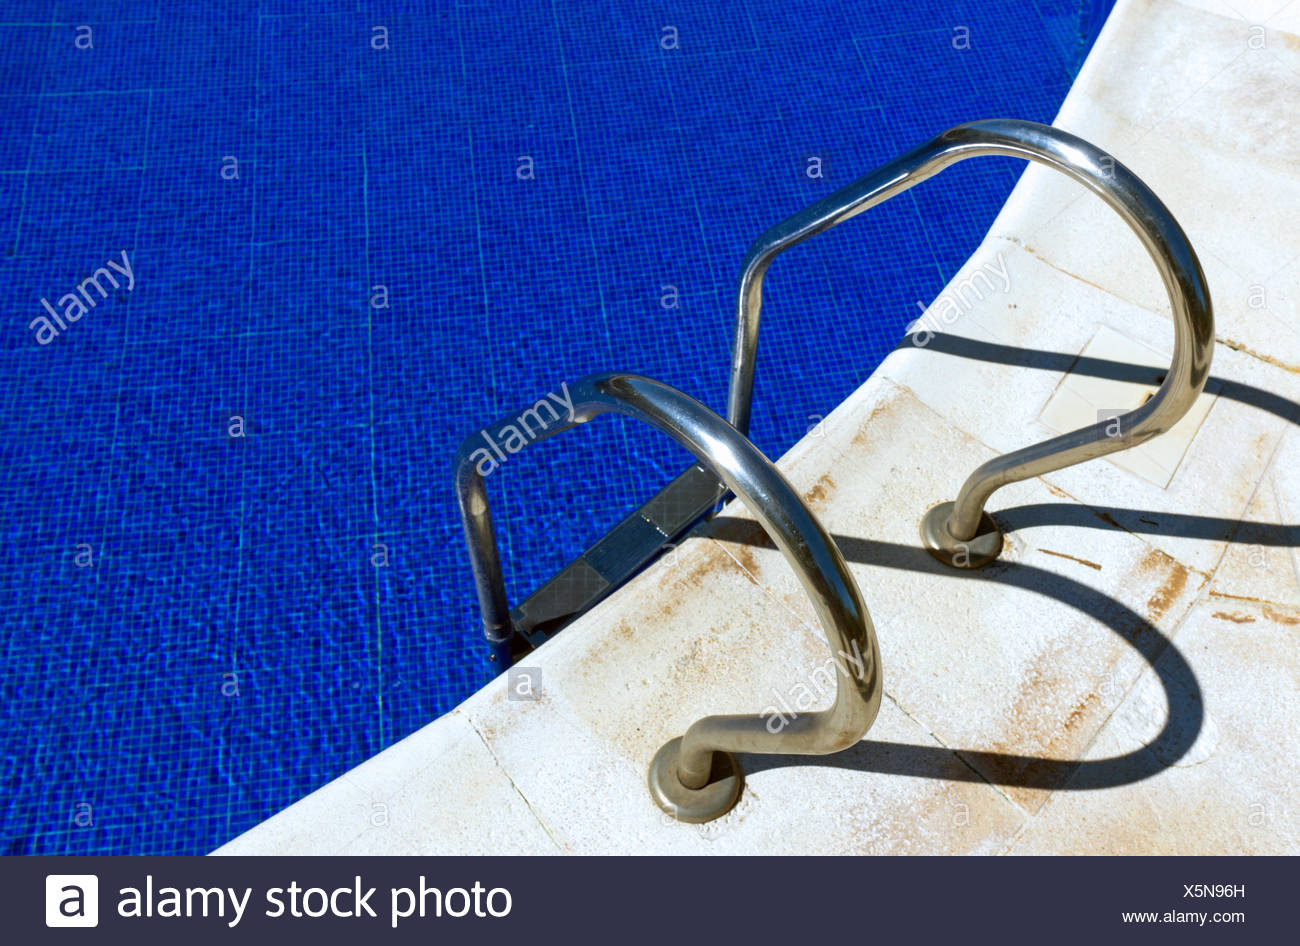 Entrance to a swimming pool - Stock Image